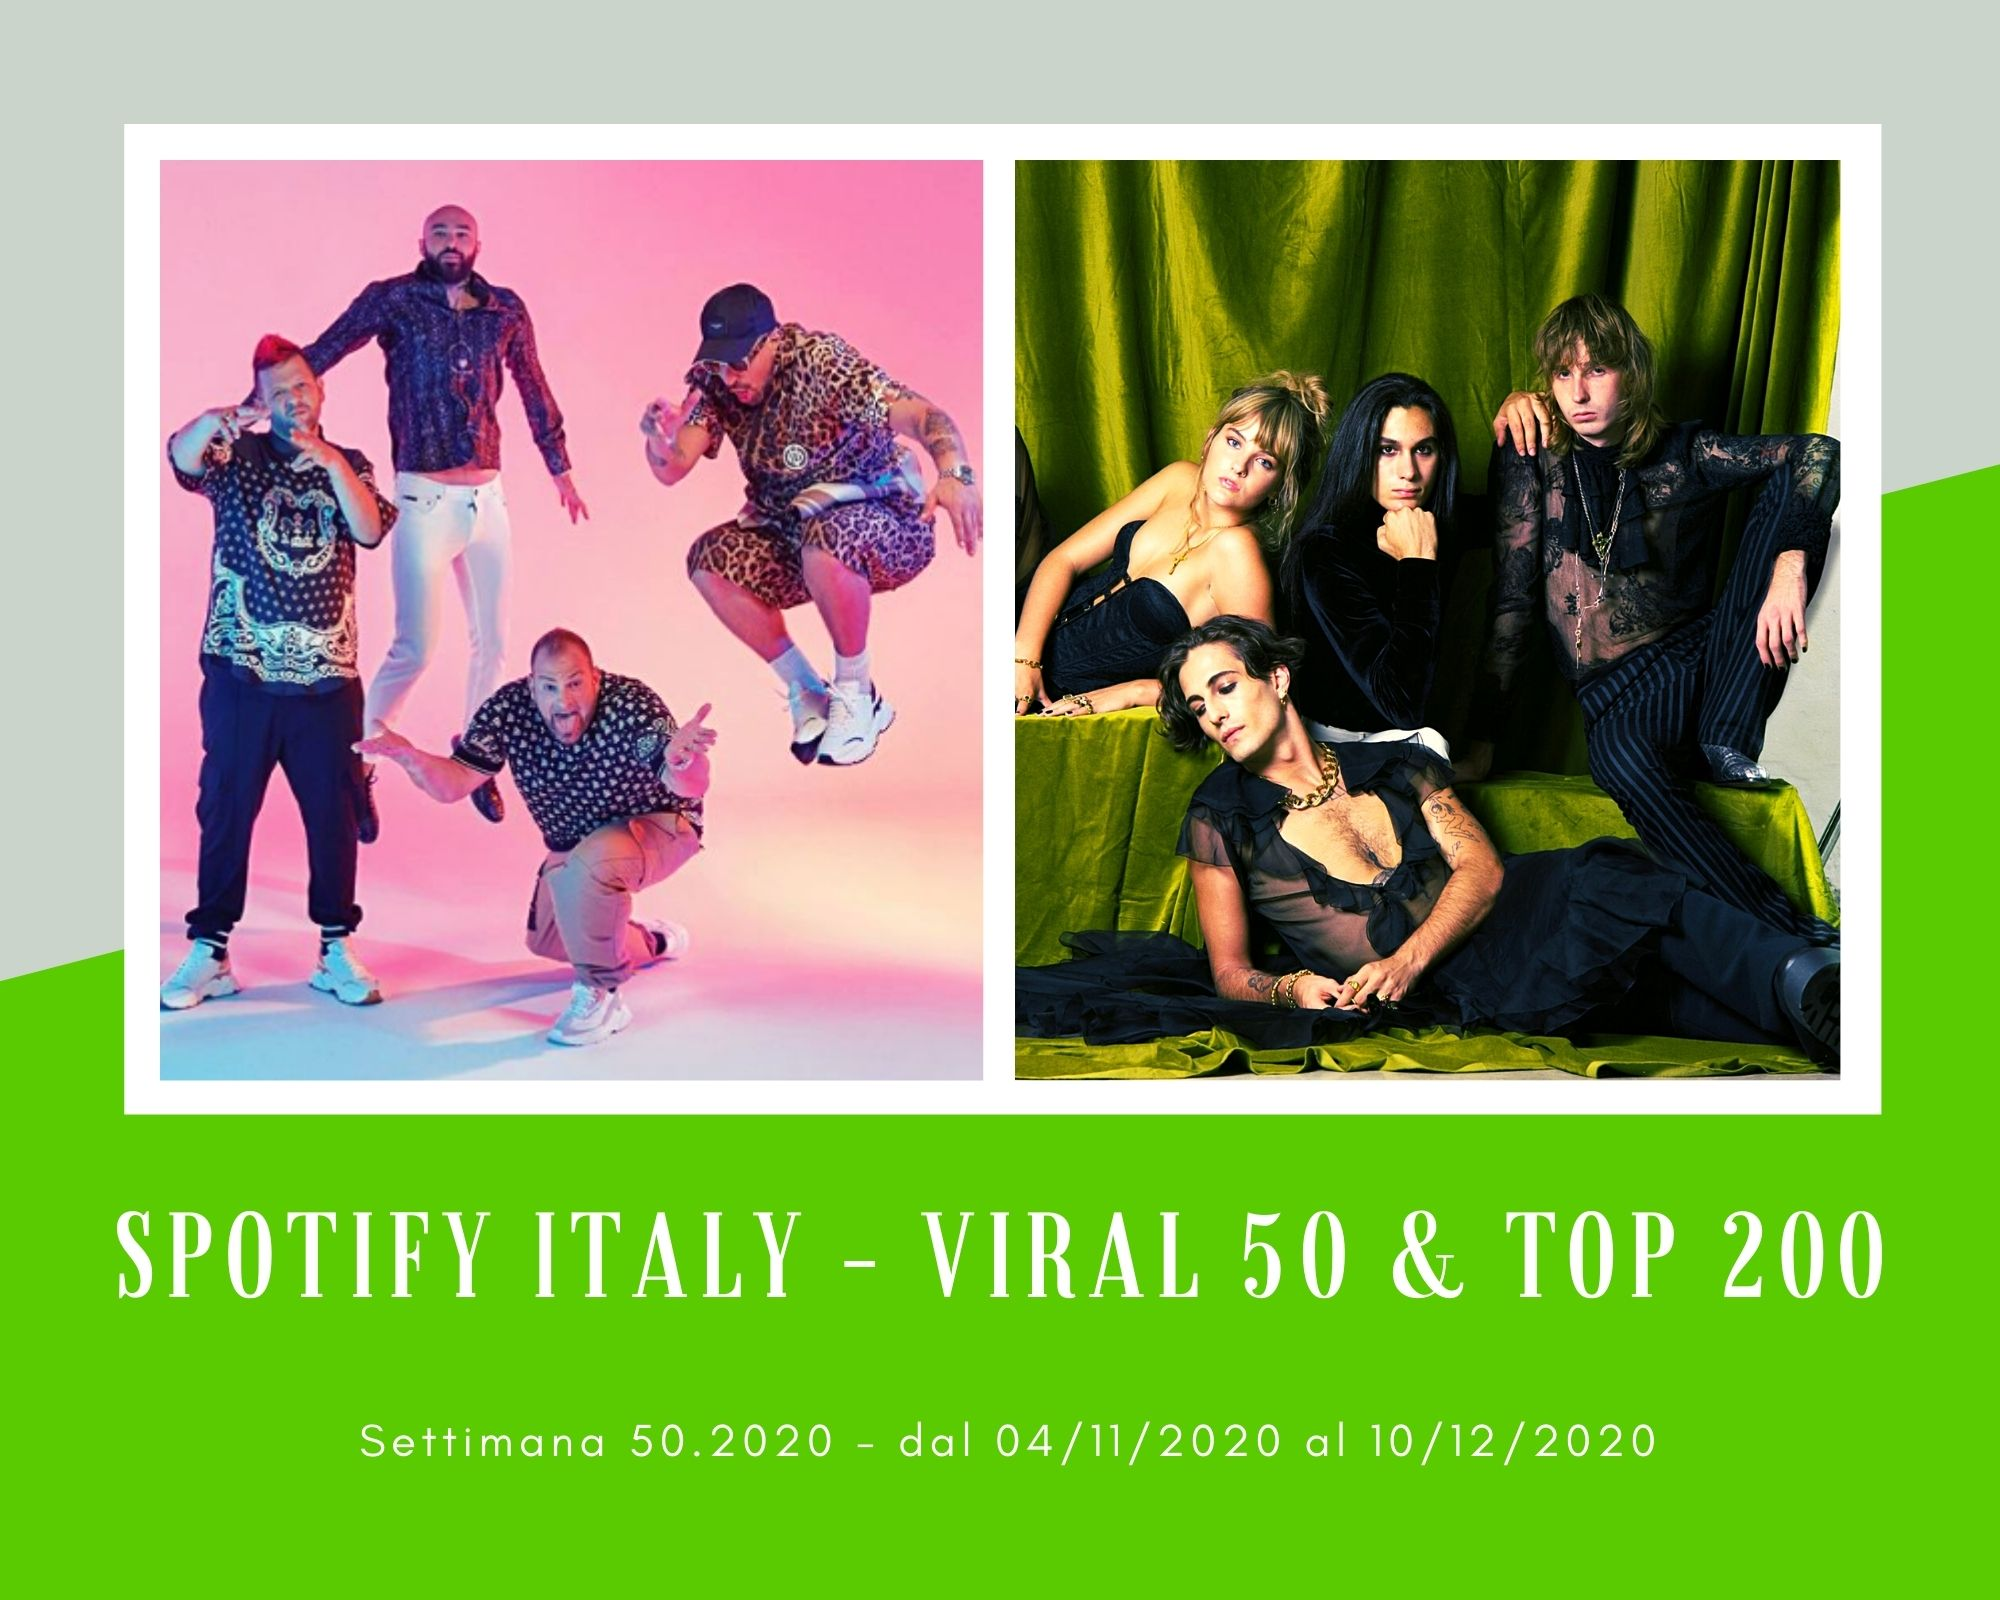 Classifiche SPOTIFY, week 50. I Maneskin e i Boomdabash tra le band preferite dai giovani